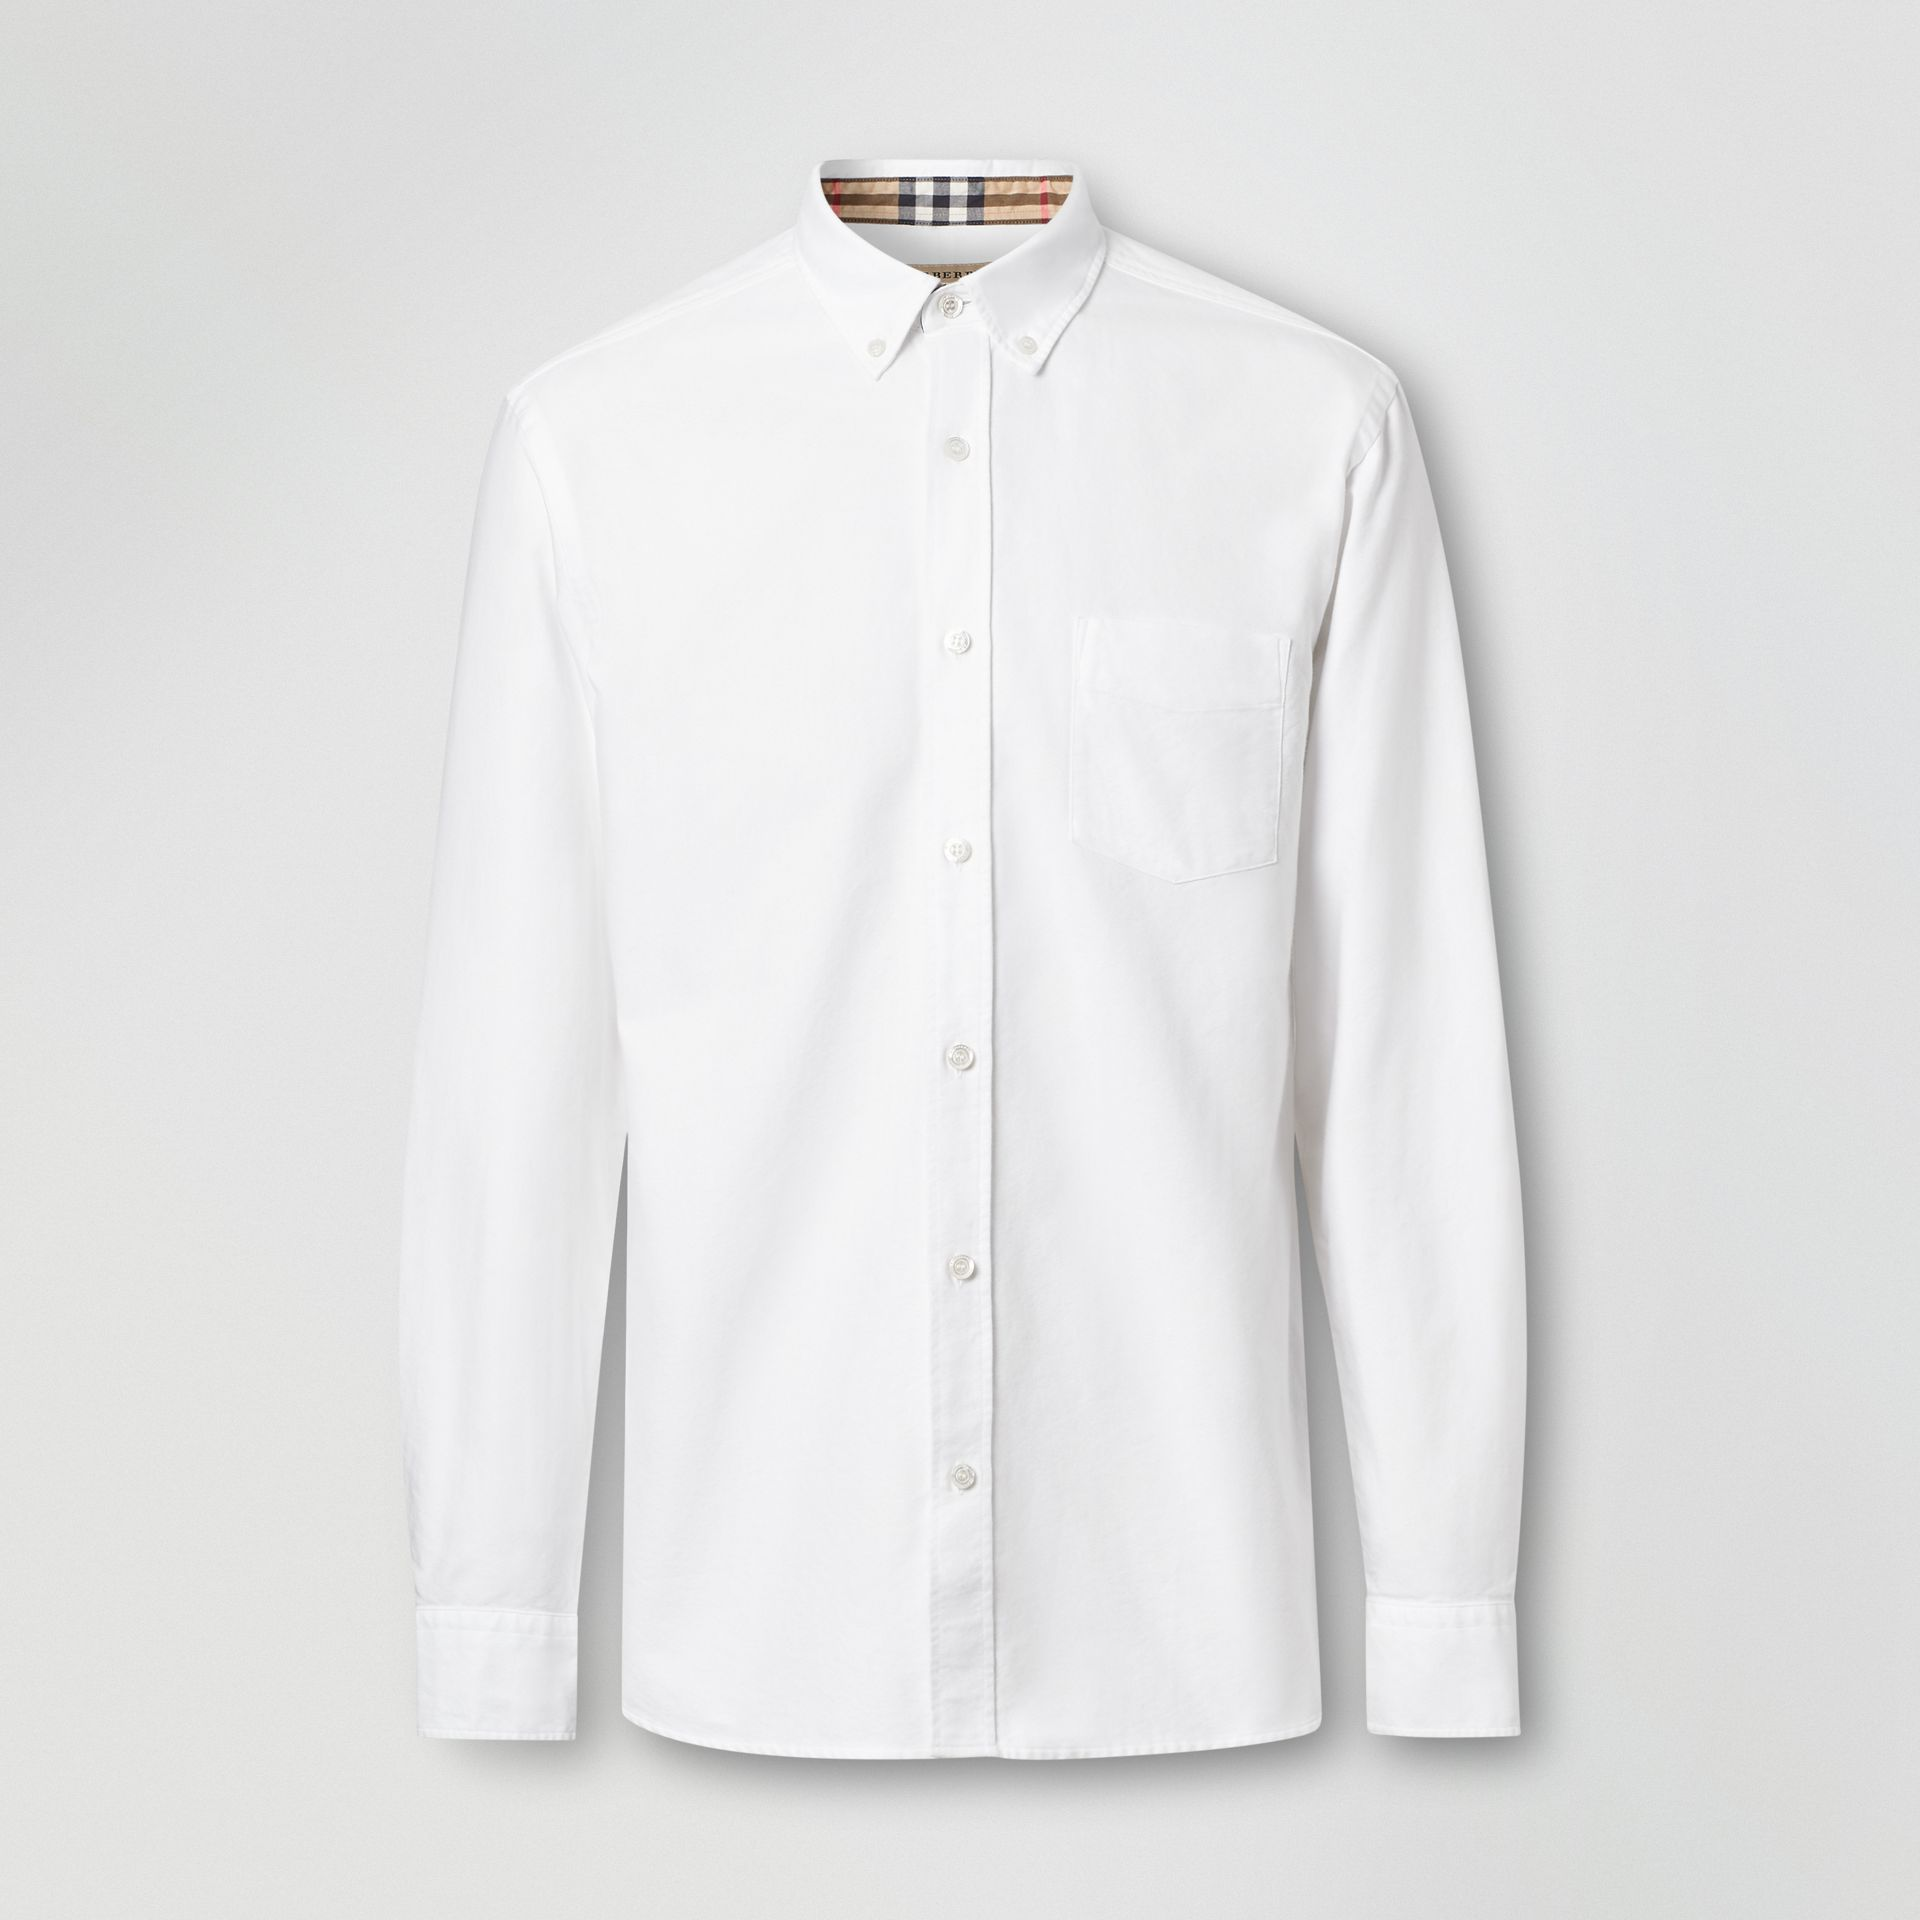 Button-down Collar Cotton Oxford Shirt in White - Men | Burberry United Kingdom - gallery image 3